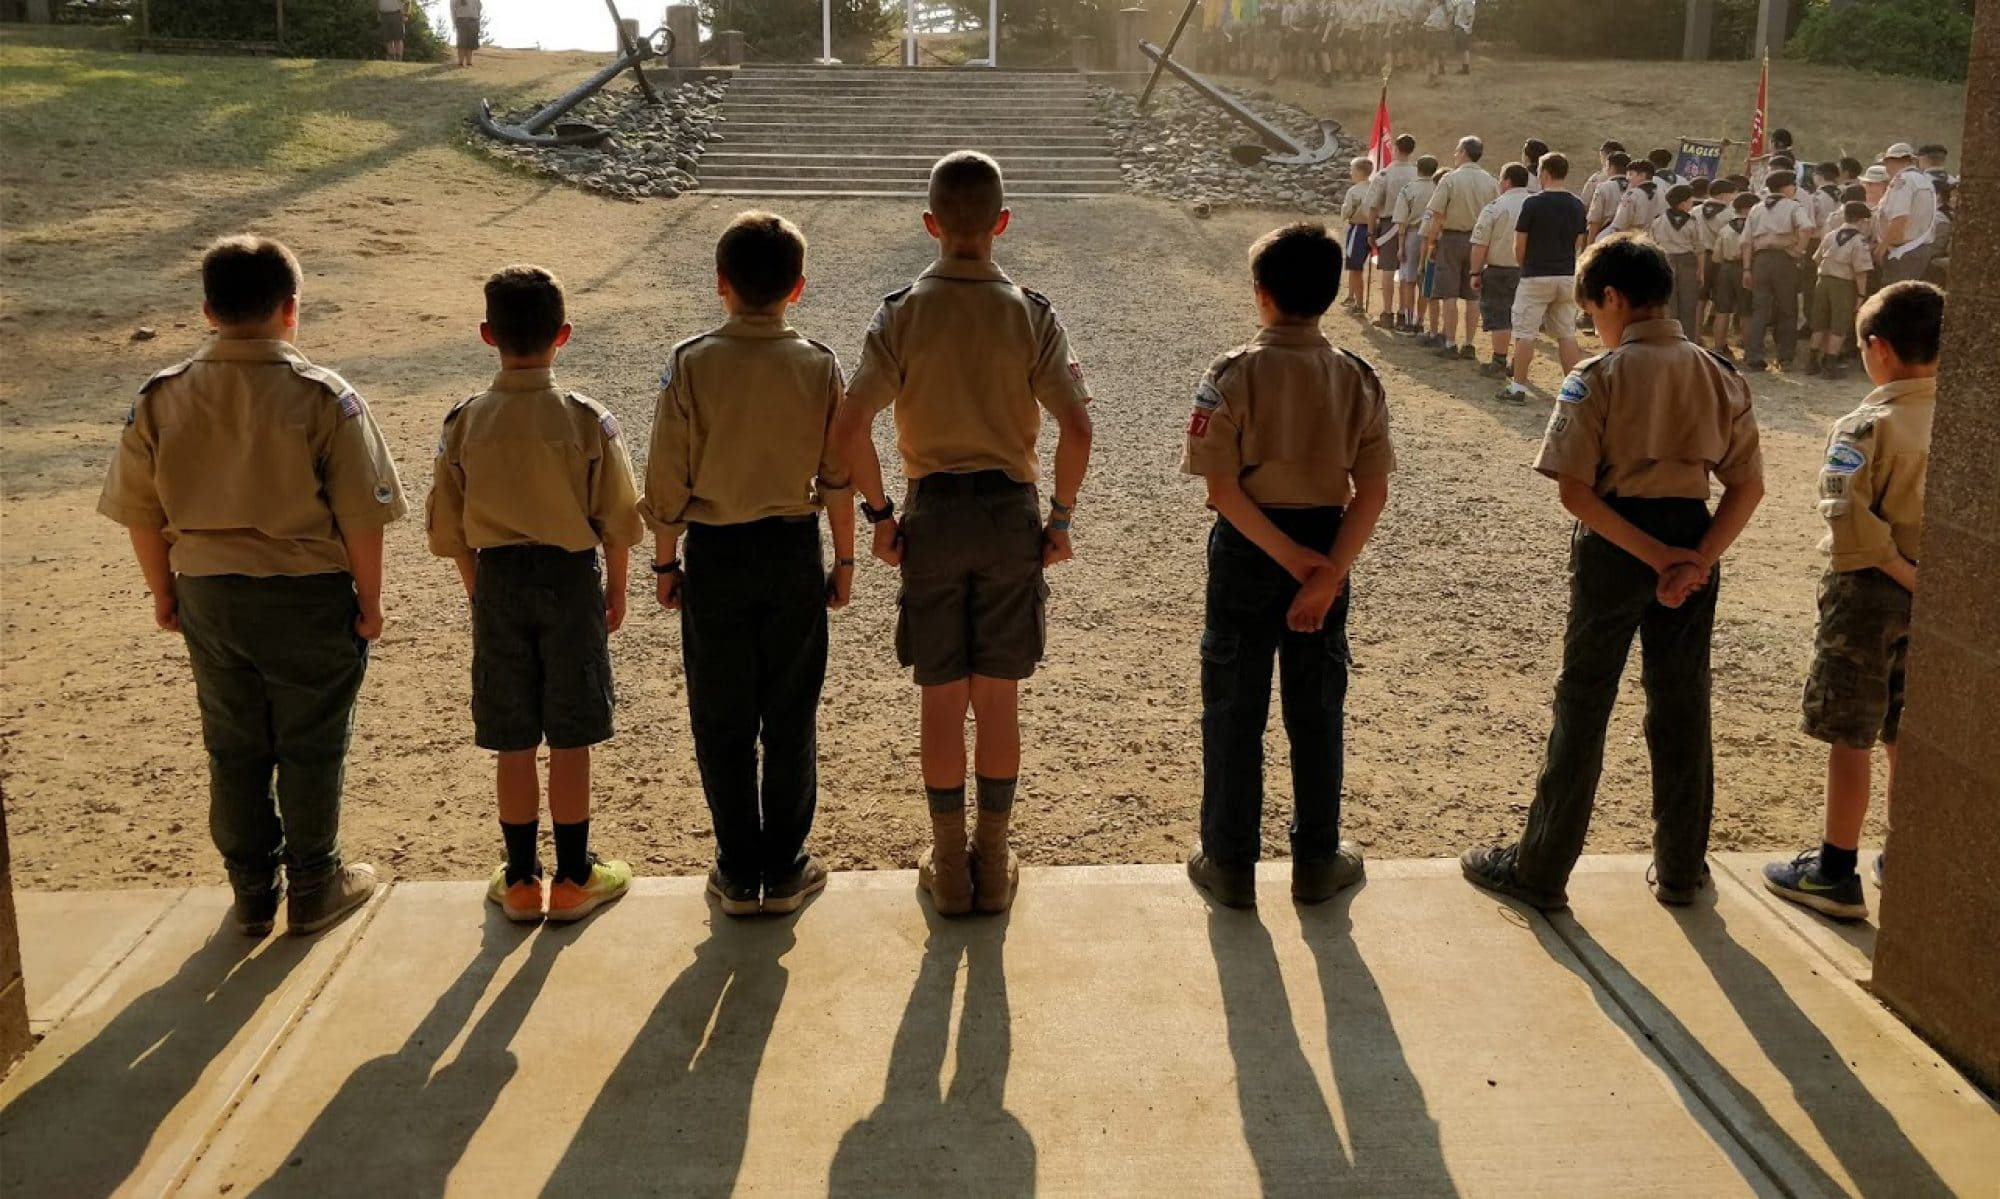 Boy scouts of america votes to end controversial ban on openly